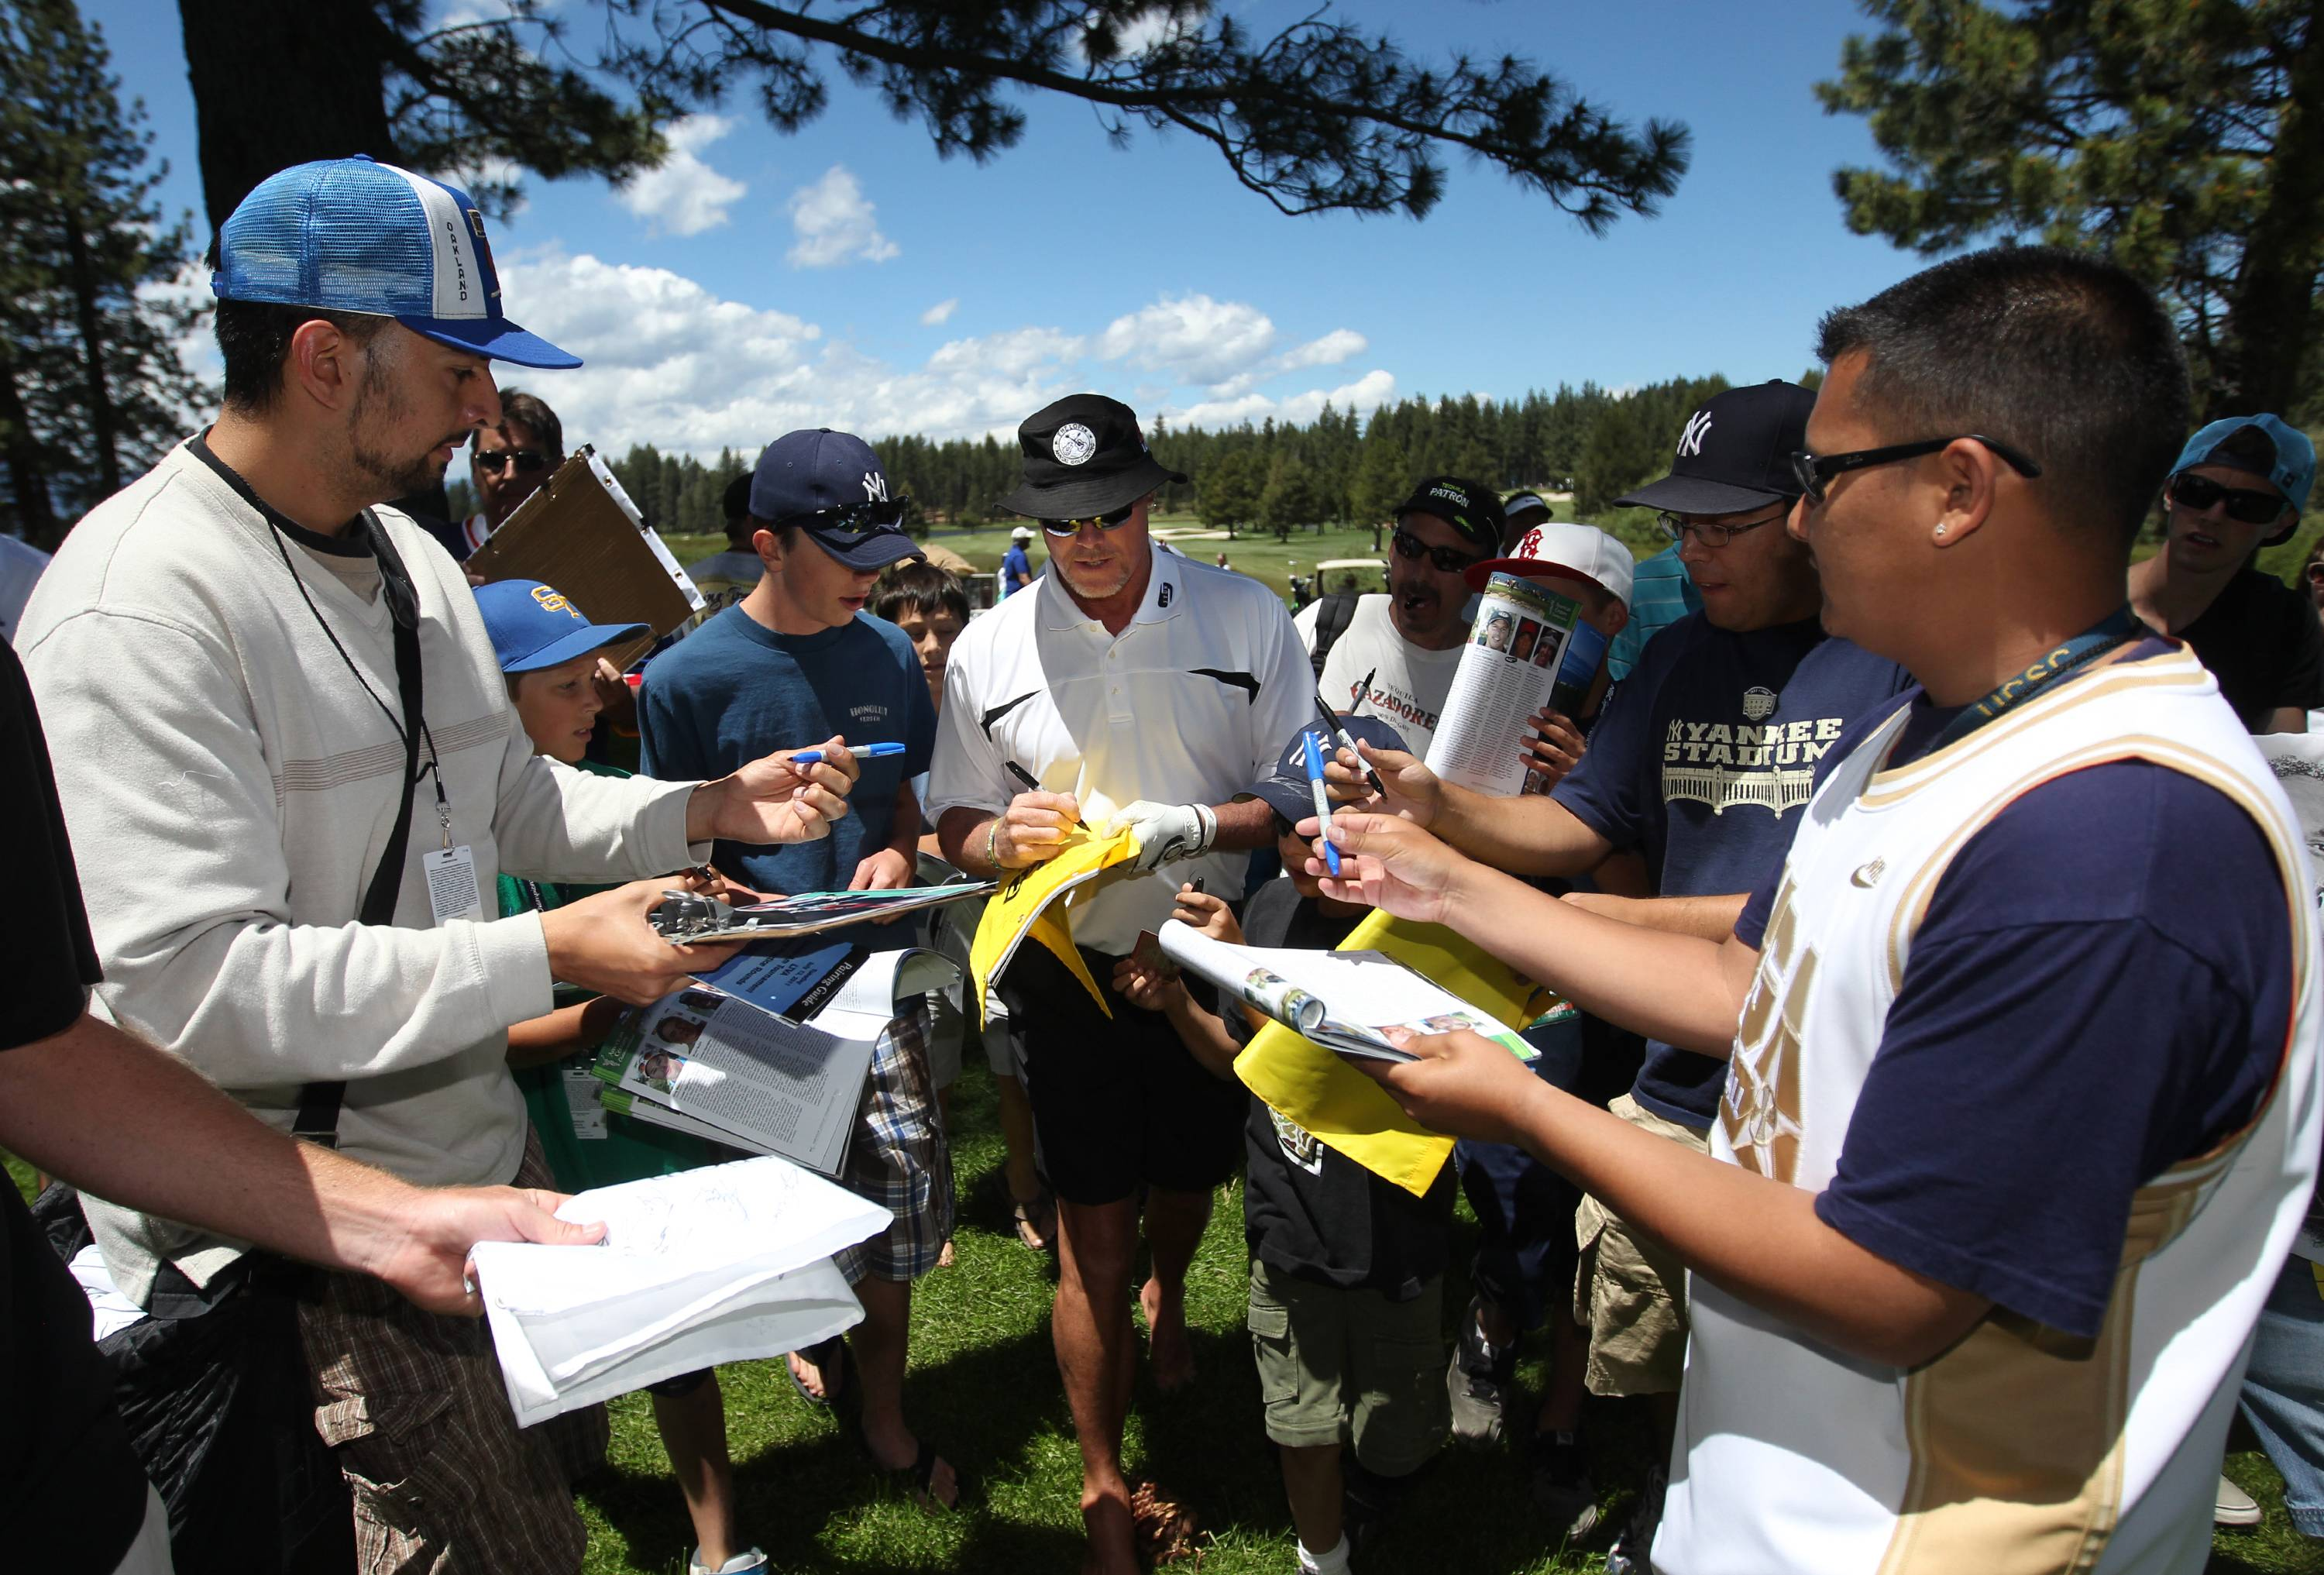 Jim McMahan signs autographs during the 22nd American Century Celebrity Golf Championship at Edgewood Tahoe Golf Course in Stateline, Nev., on Wednesday. McMahon was taken to a Reno hospital Monday after the limousine he was riding in crashed through a fence. Authorities said no one was seriously injured in the accident.